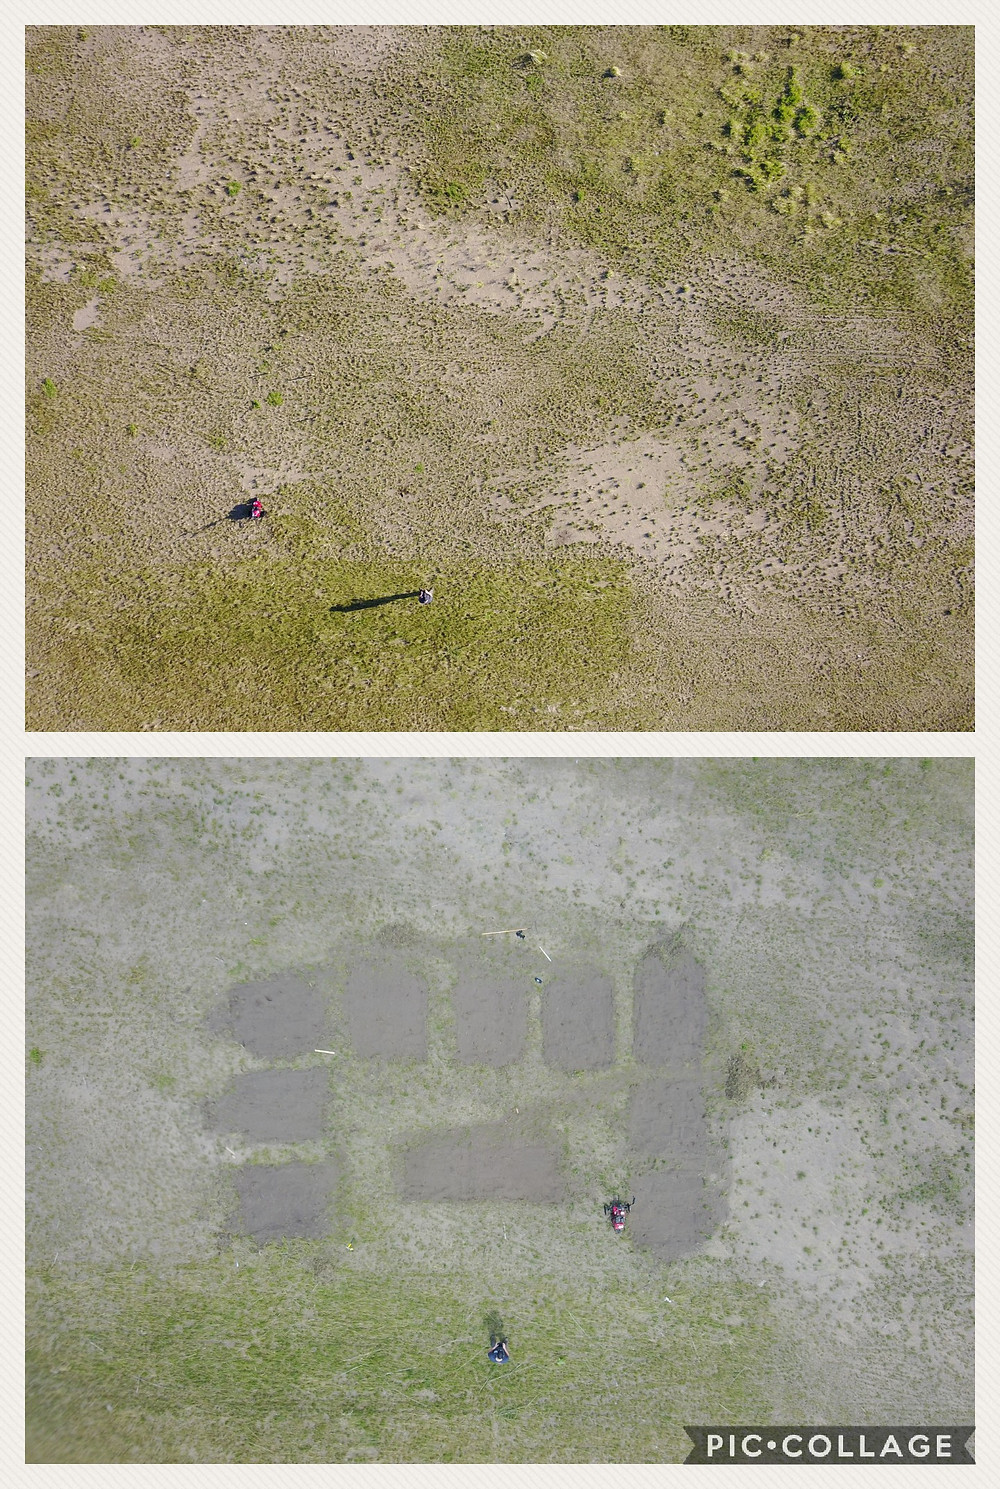 Example of a straight down photo of a garden I am developing at my work. Before and After. I intend on editing this more once construction is done.